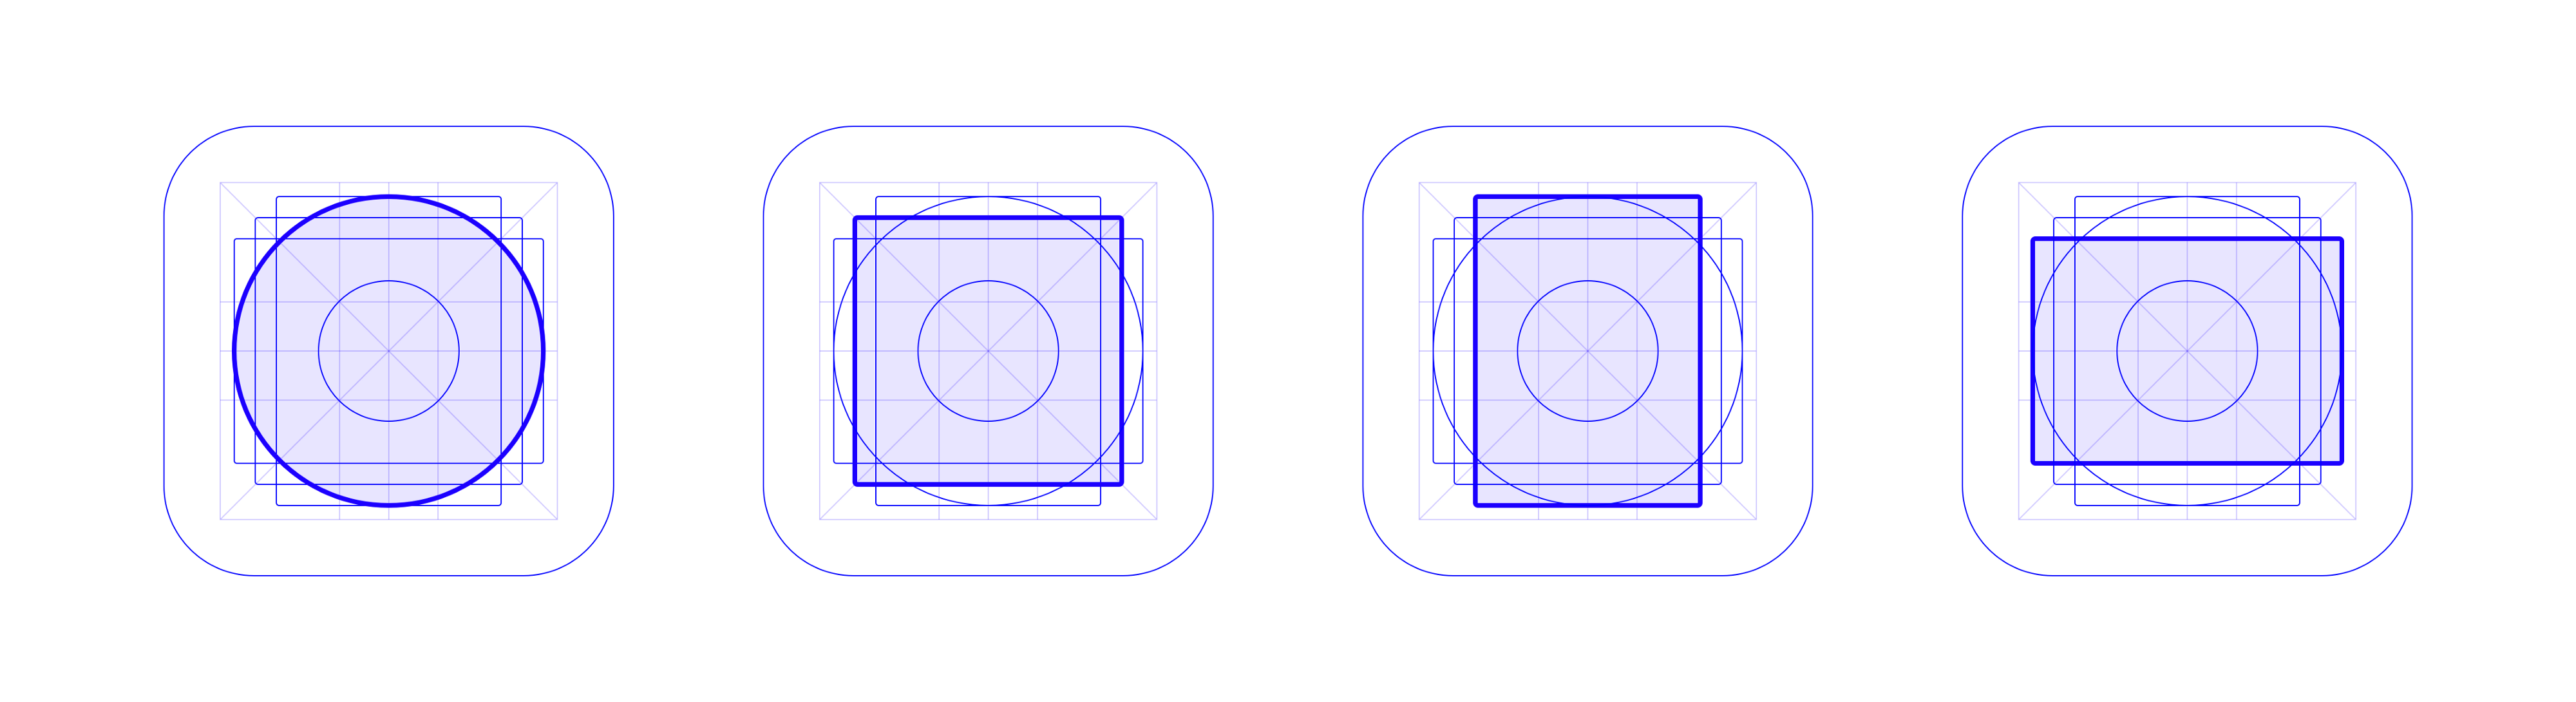 The Play Store grid's keyshapes: circle, square, portrait rectangle, and landscape rectangle